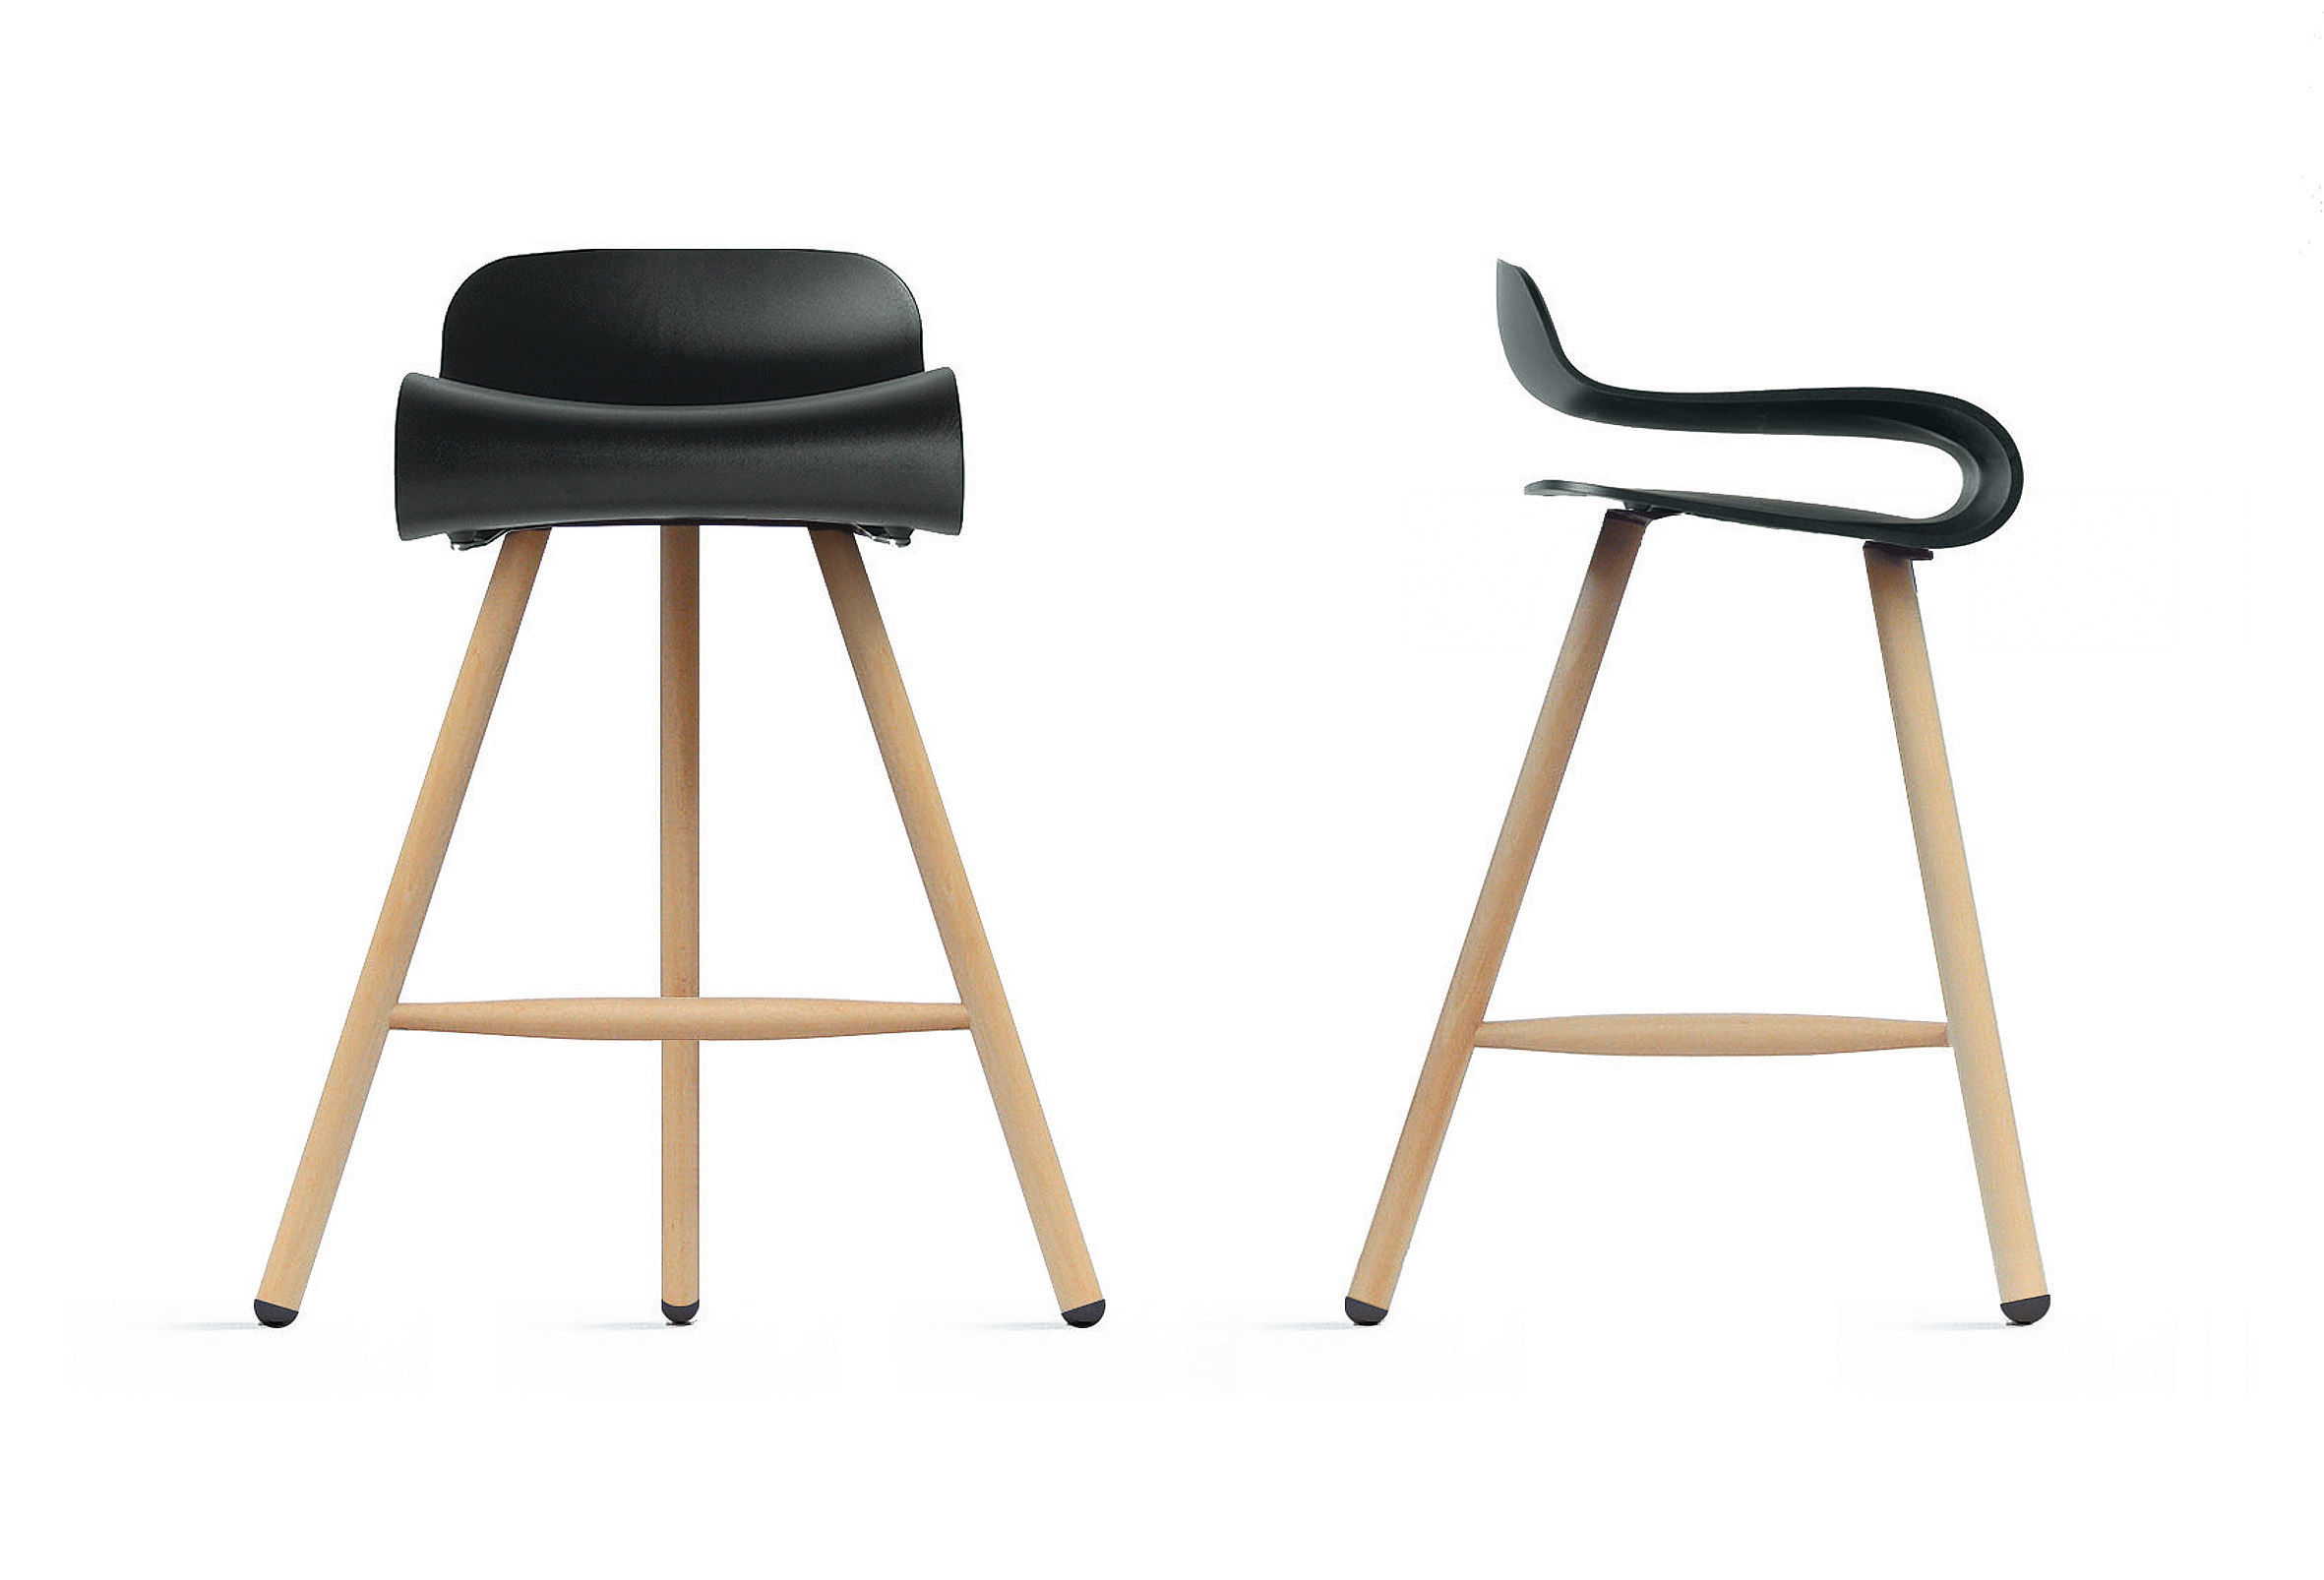 Very Impressive portraiture of  Bar stools > BCN Wood Bar stool H 66 cm Plastic & wood legs by with #906A3C color and 2362x1606 pixels